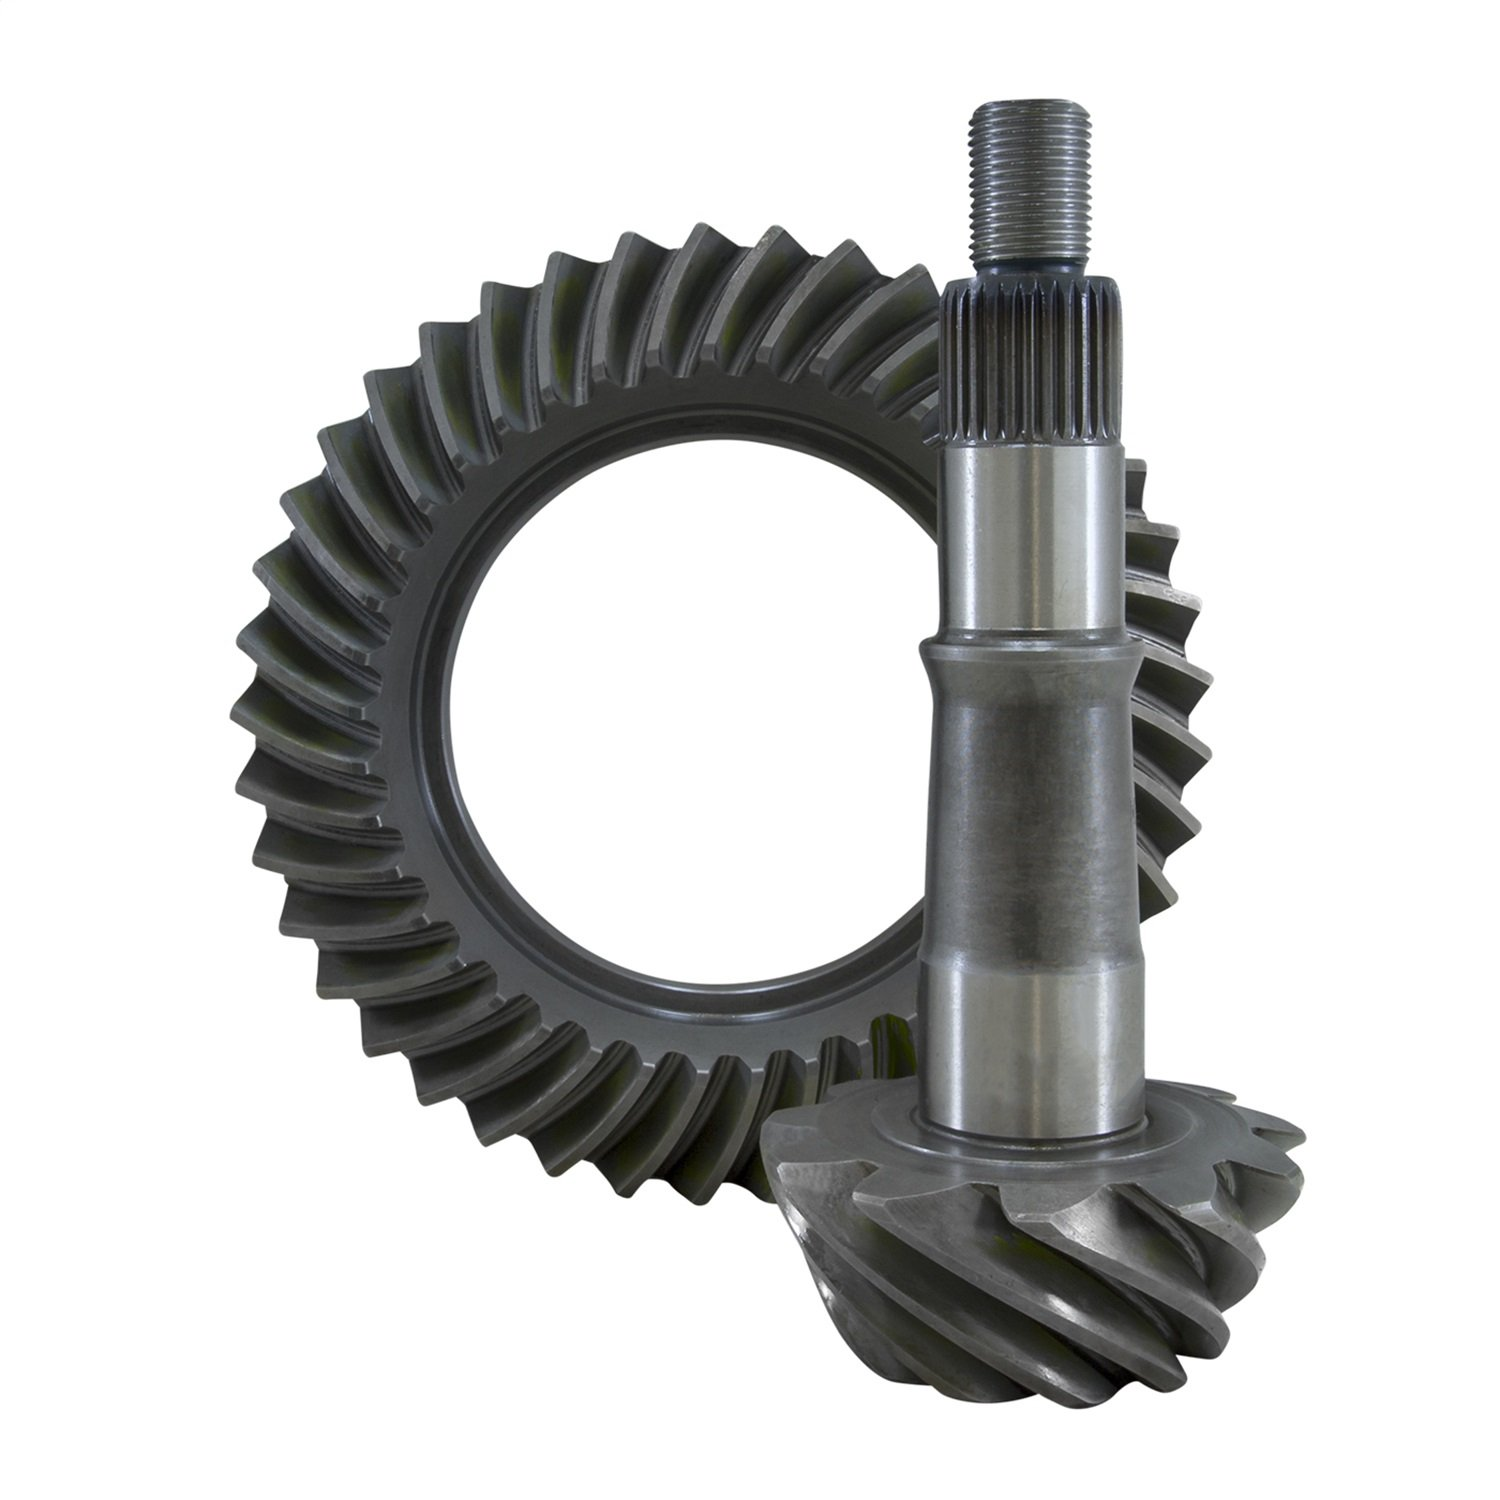 USA Standard Gear (ZG GM8.5-538) Ring and Pinion Gear Set for GM 8.5'' Differential by USA Standard Gear